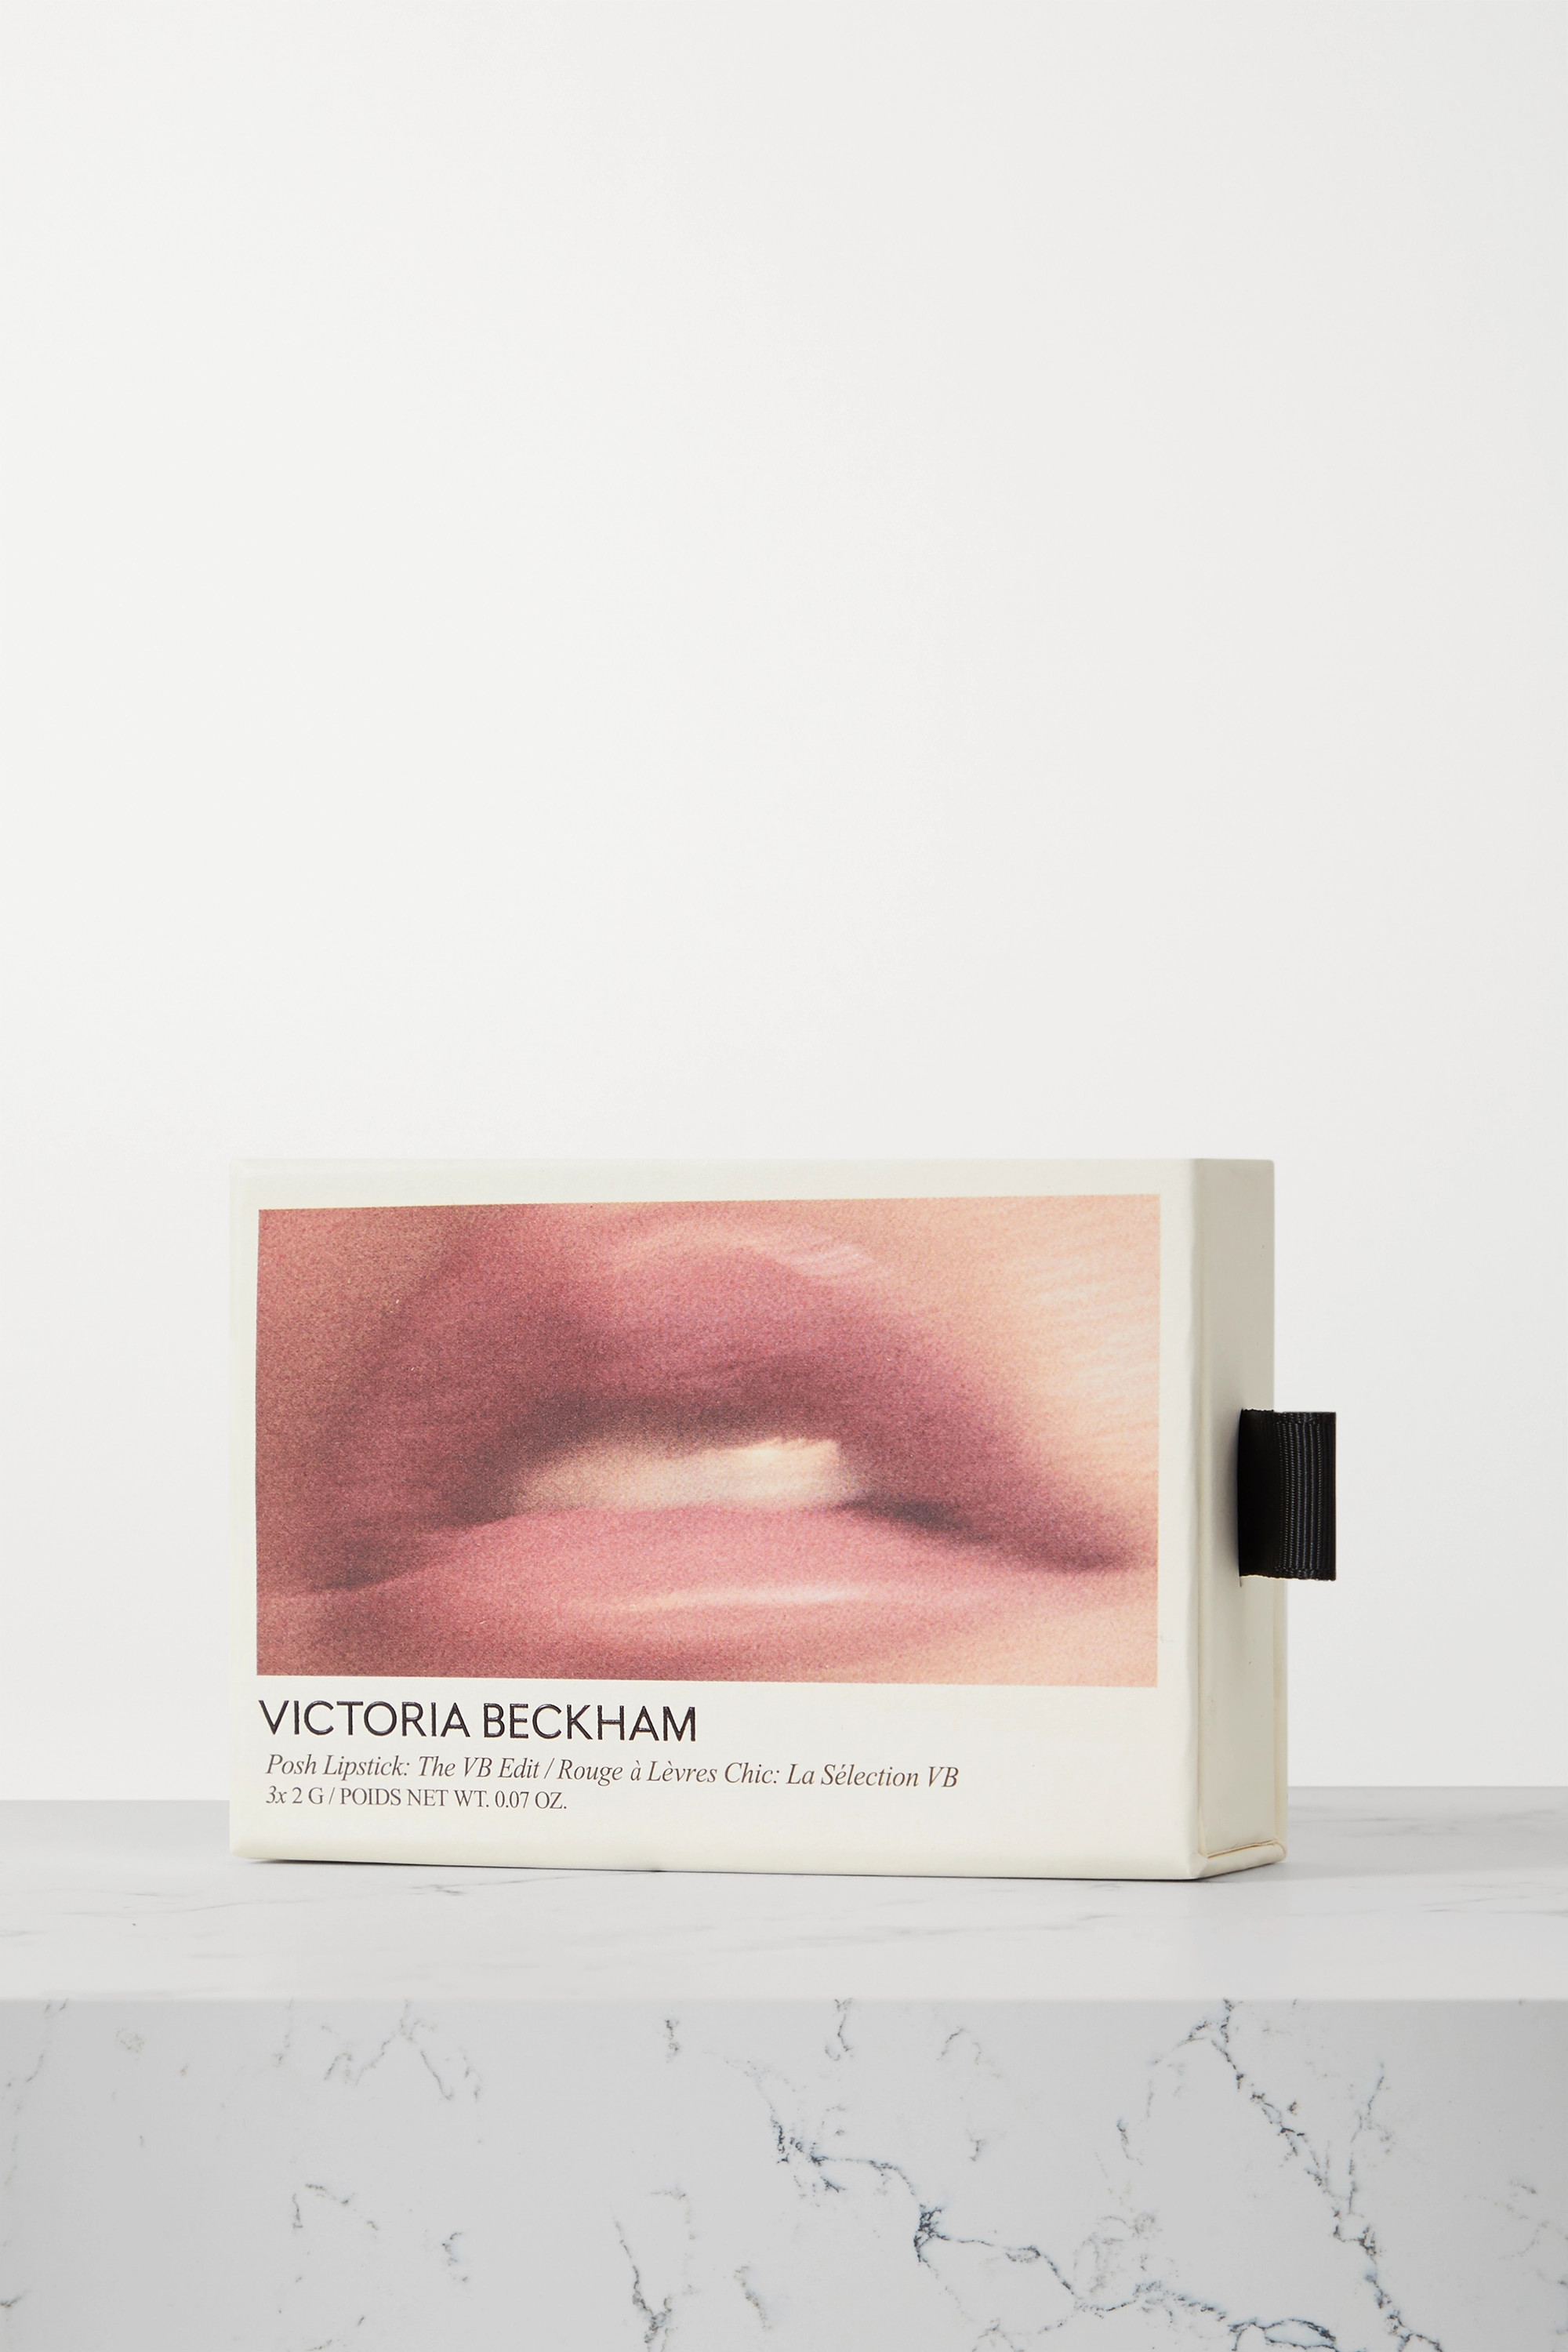 VICTORIA BECKHAM BEAUTY Posh Lipstick Trio: The VB Edit